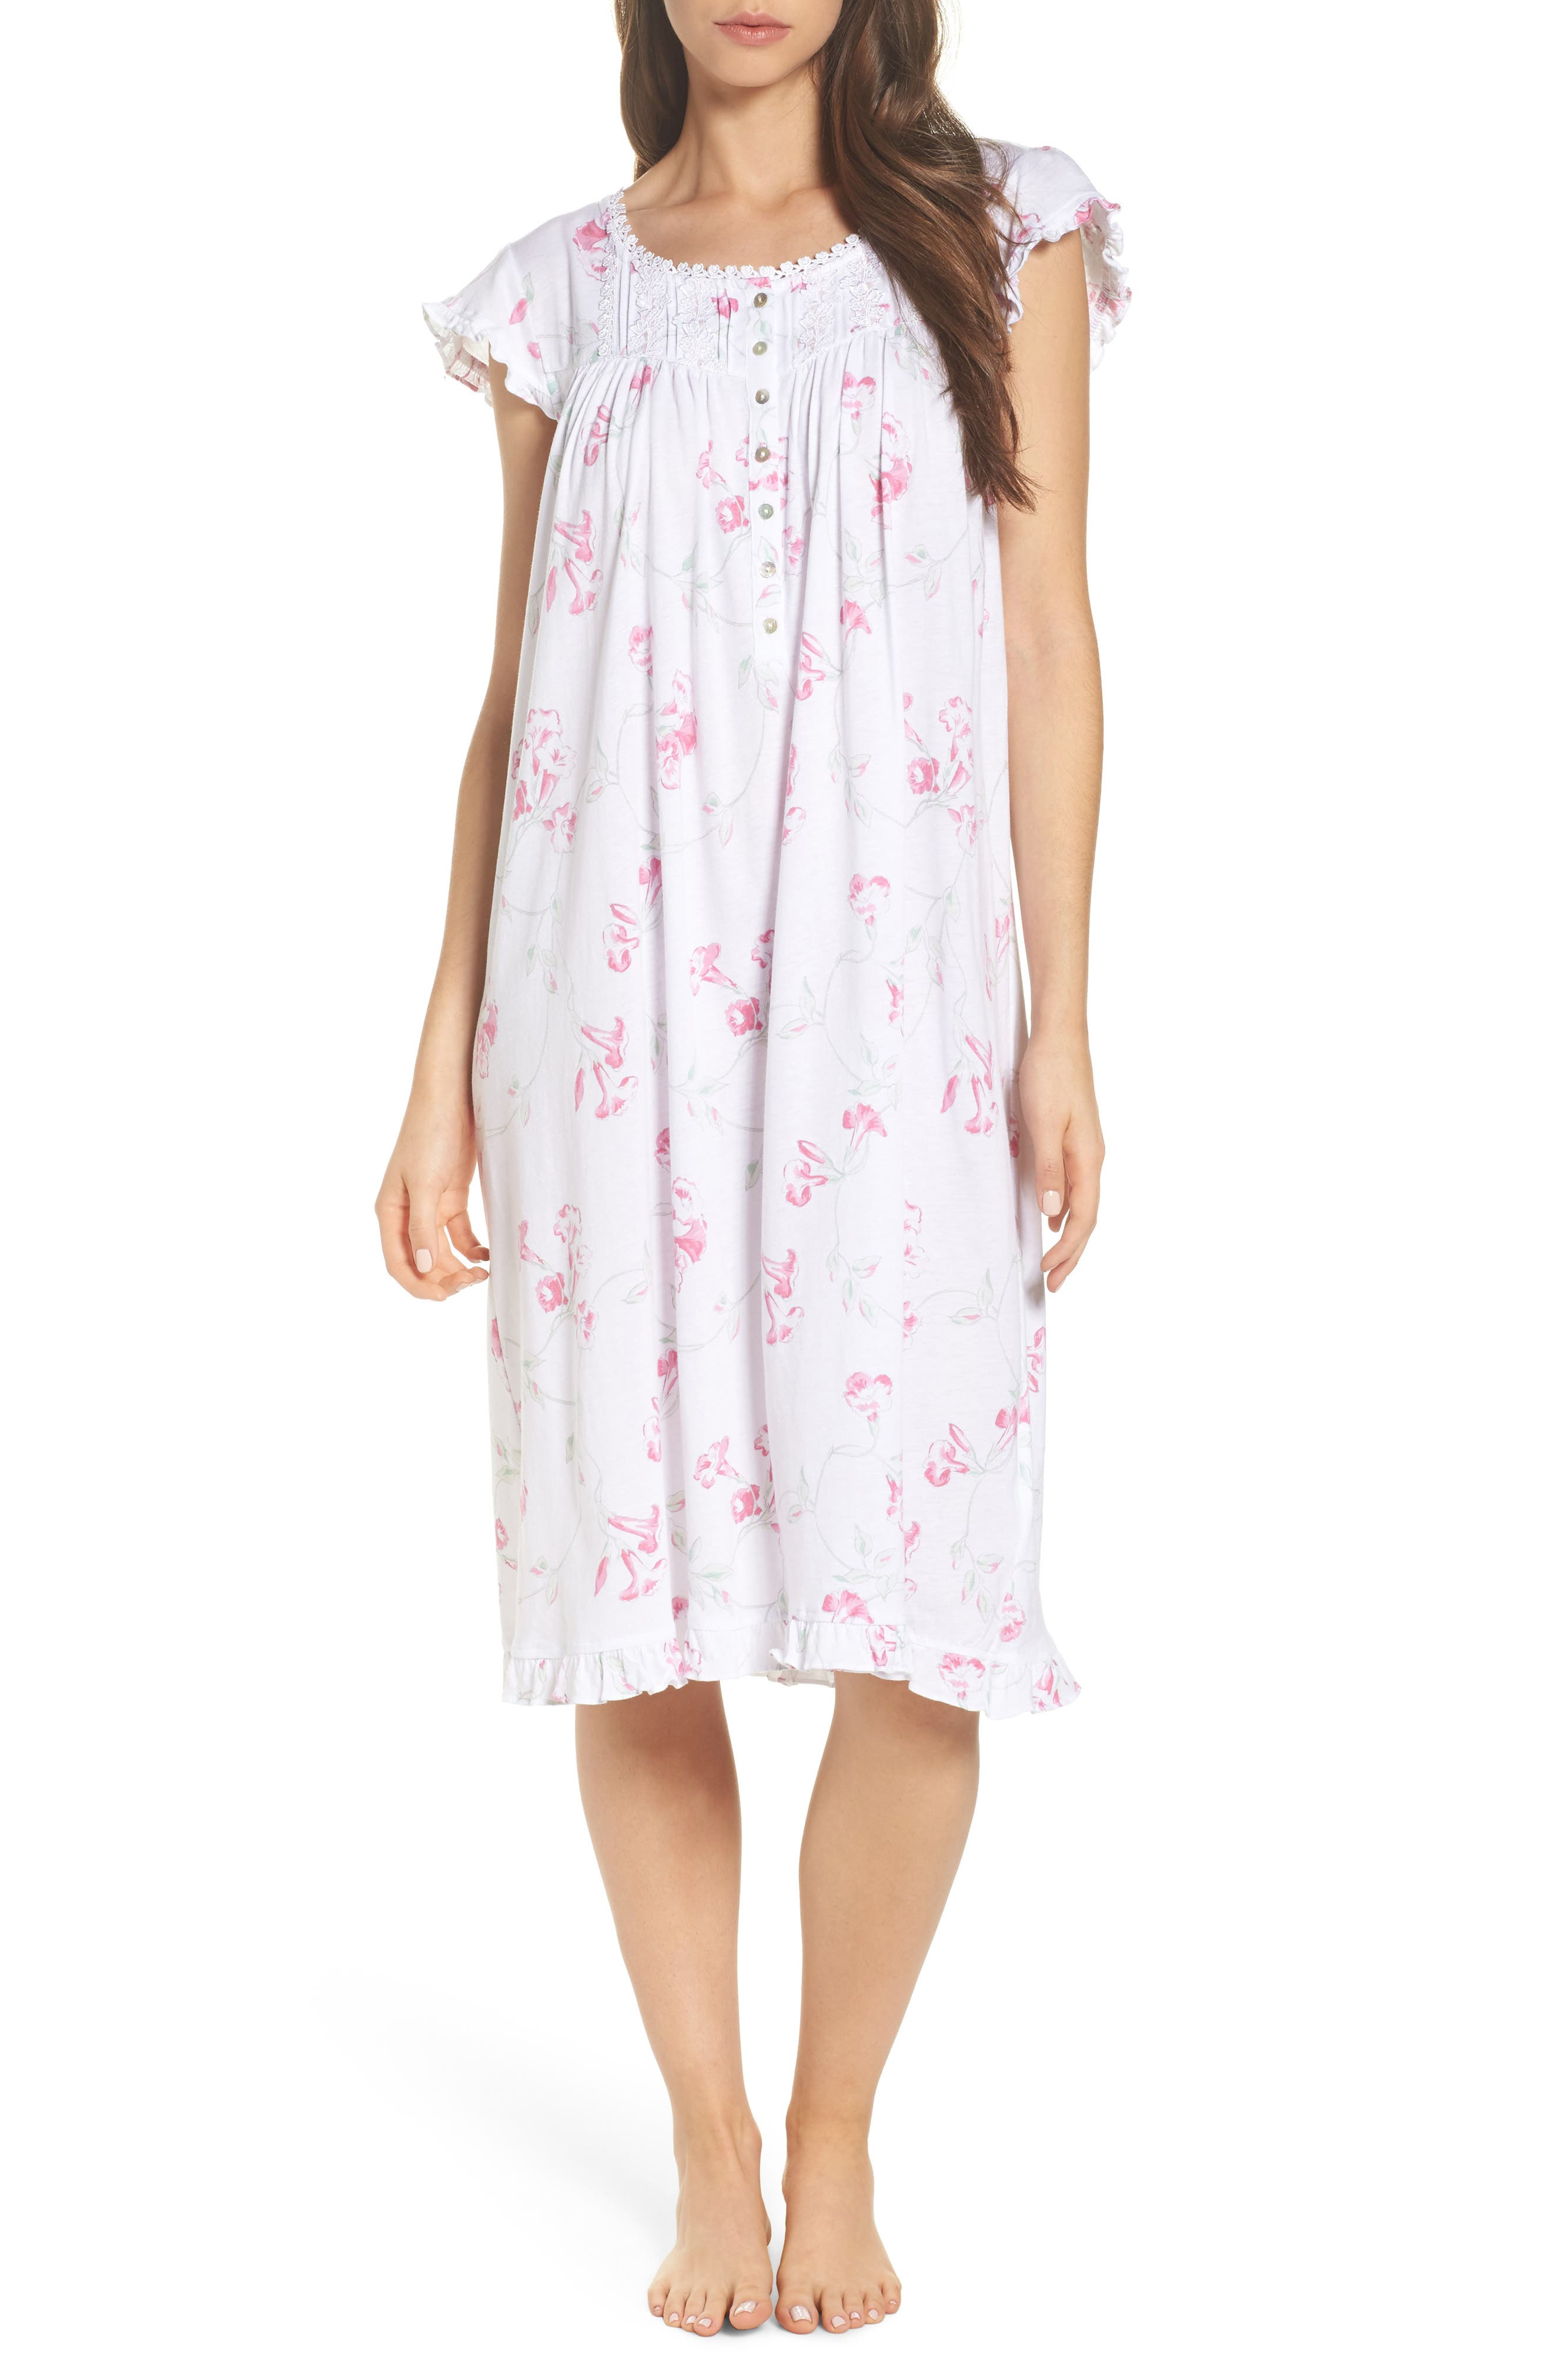 Floral Print Nightgown,                             Main thumbnail 1, color,                             White Floral Scroll